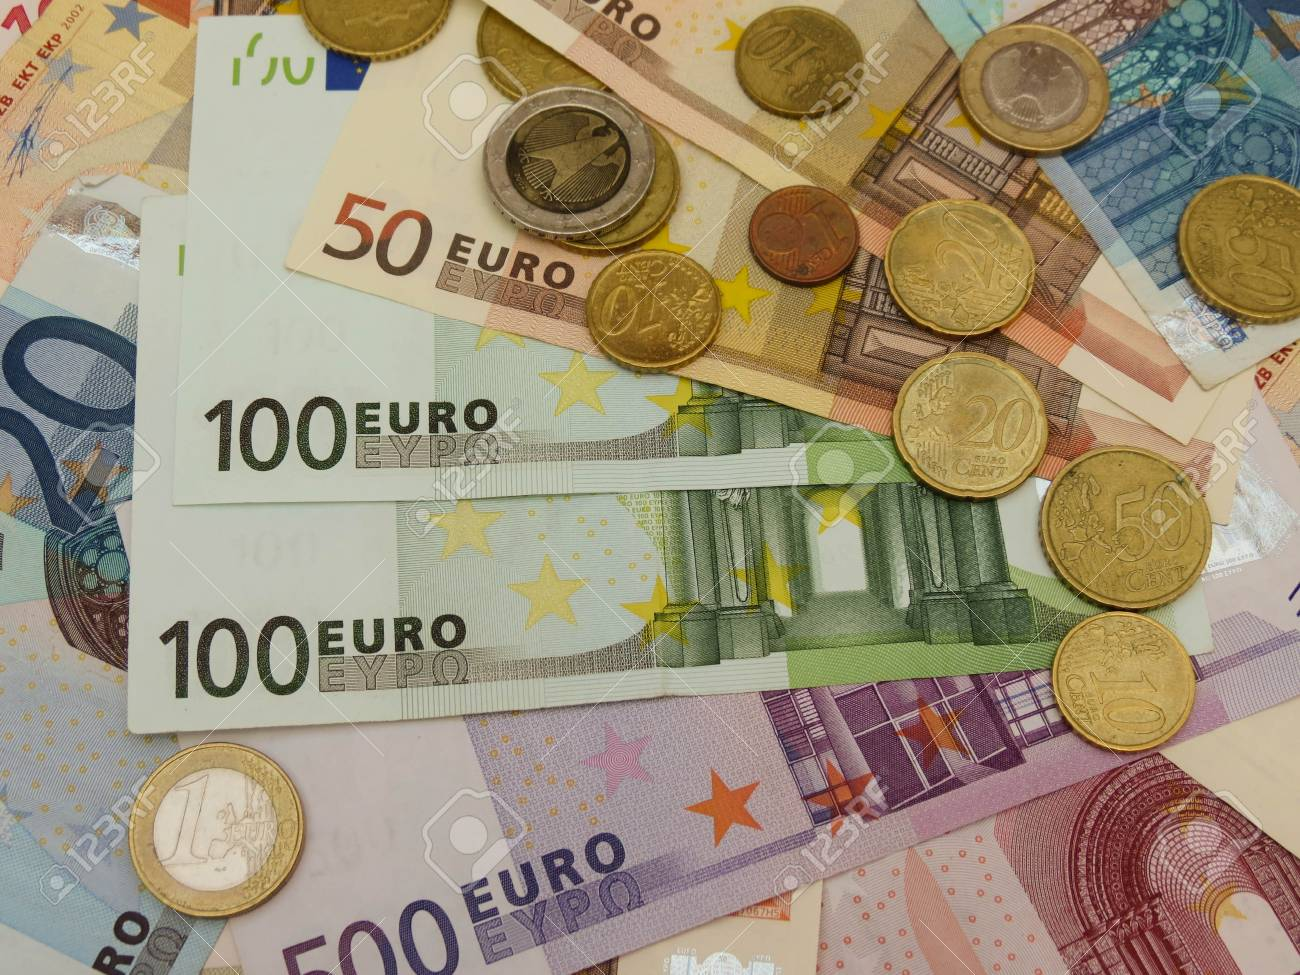 Euro (EUR) banknotes and coins money useful as a background or money concept Stock Photo - 18339608